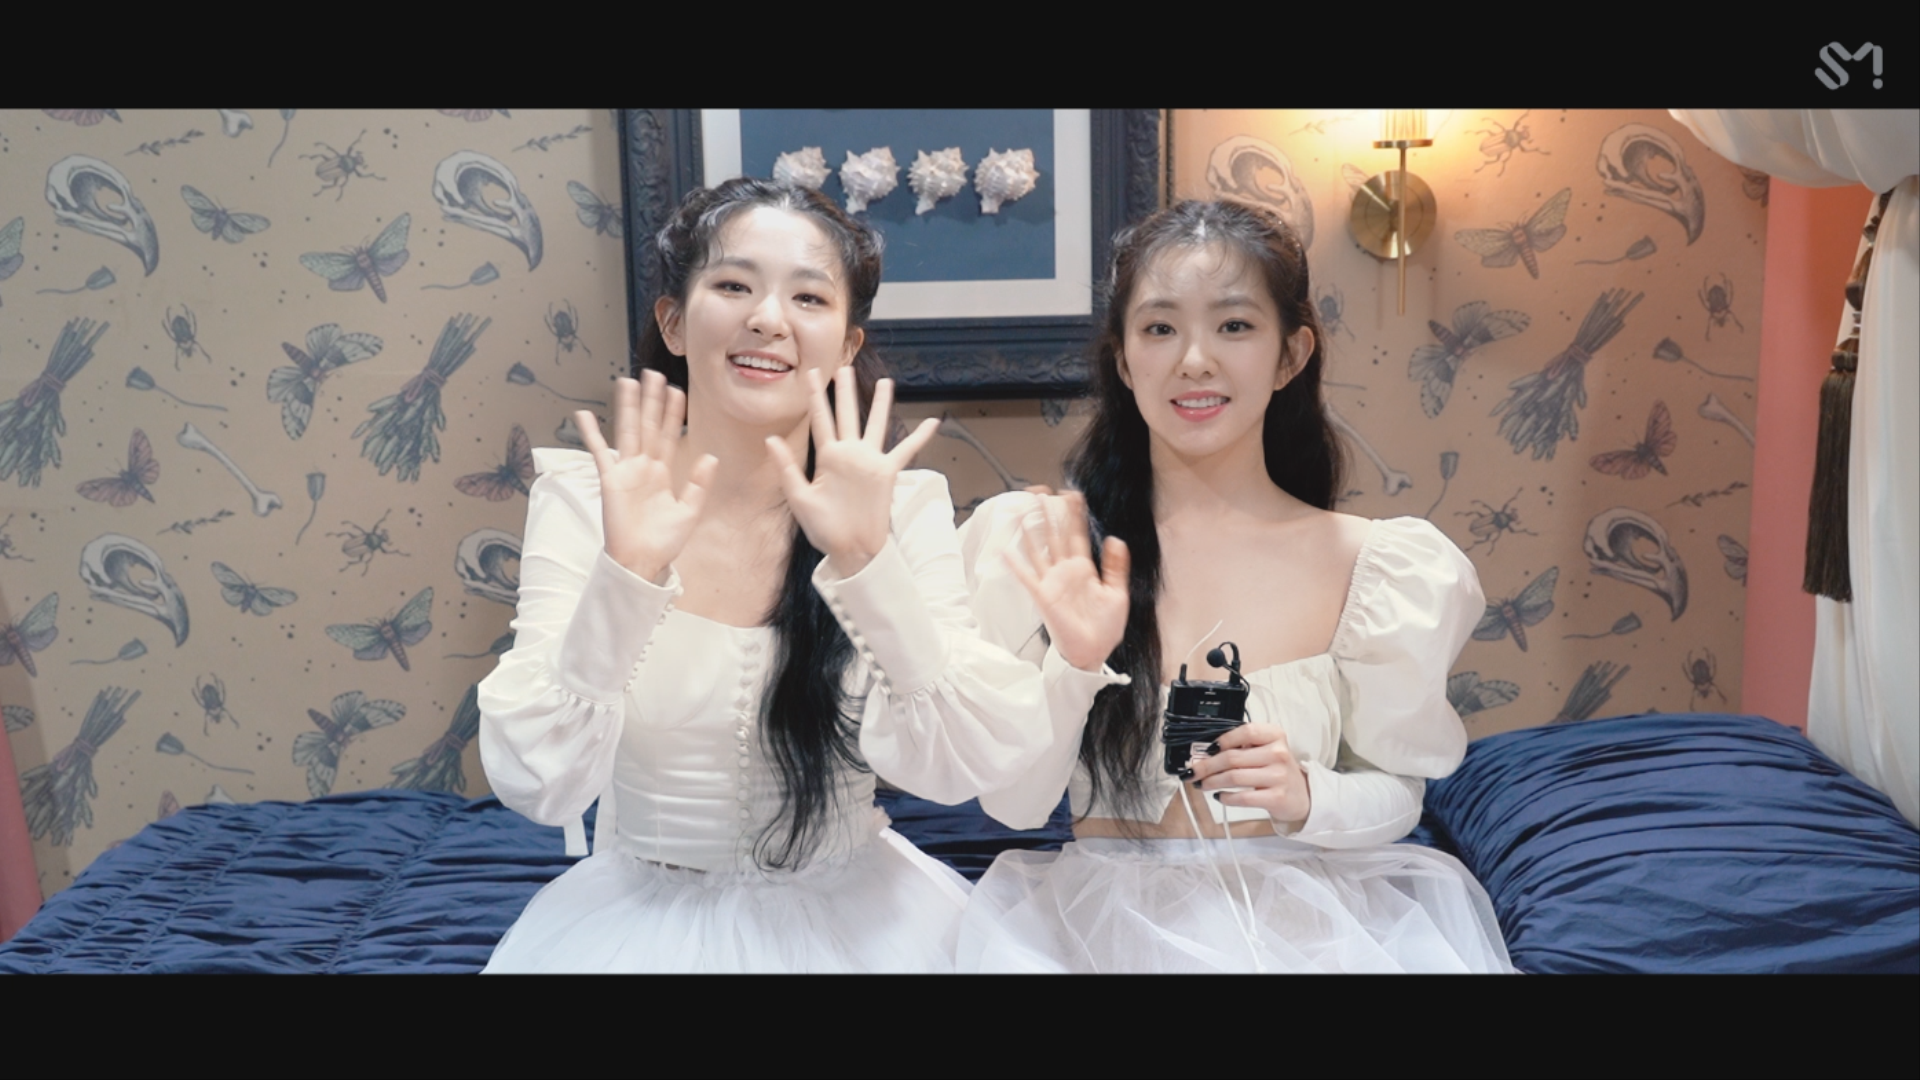 Red Velvet - IRENE & SEULGI 'Monster' MV Behind The Scenes